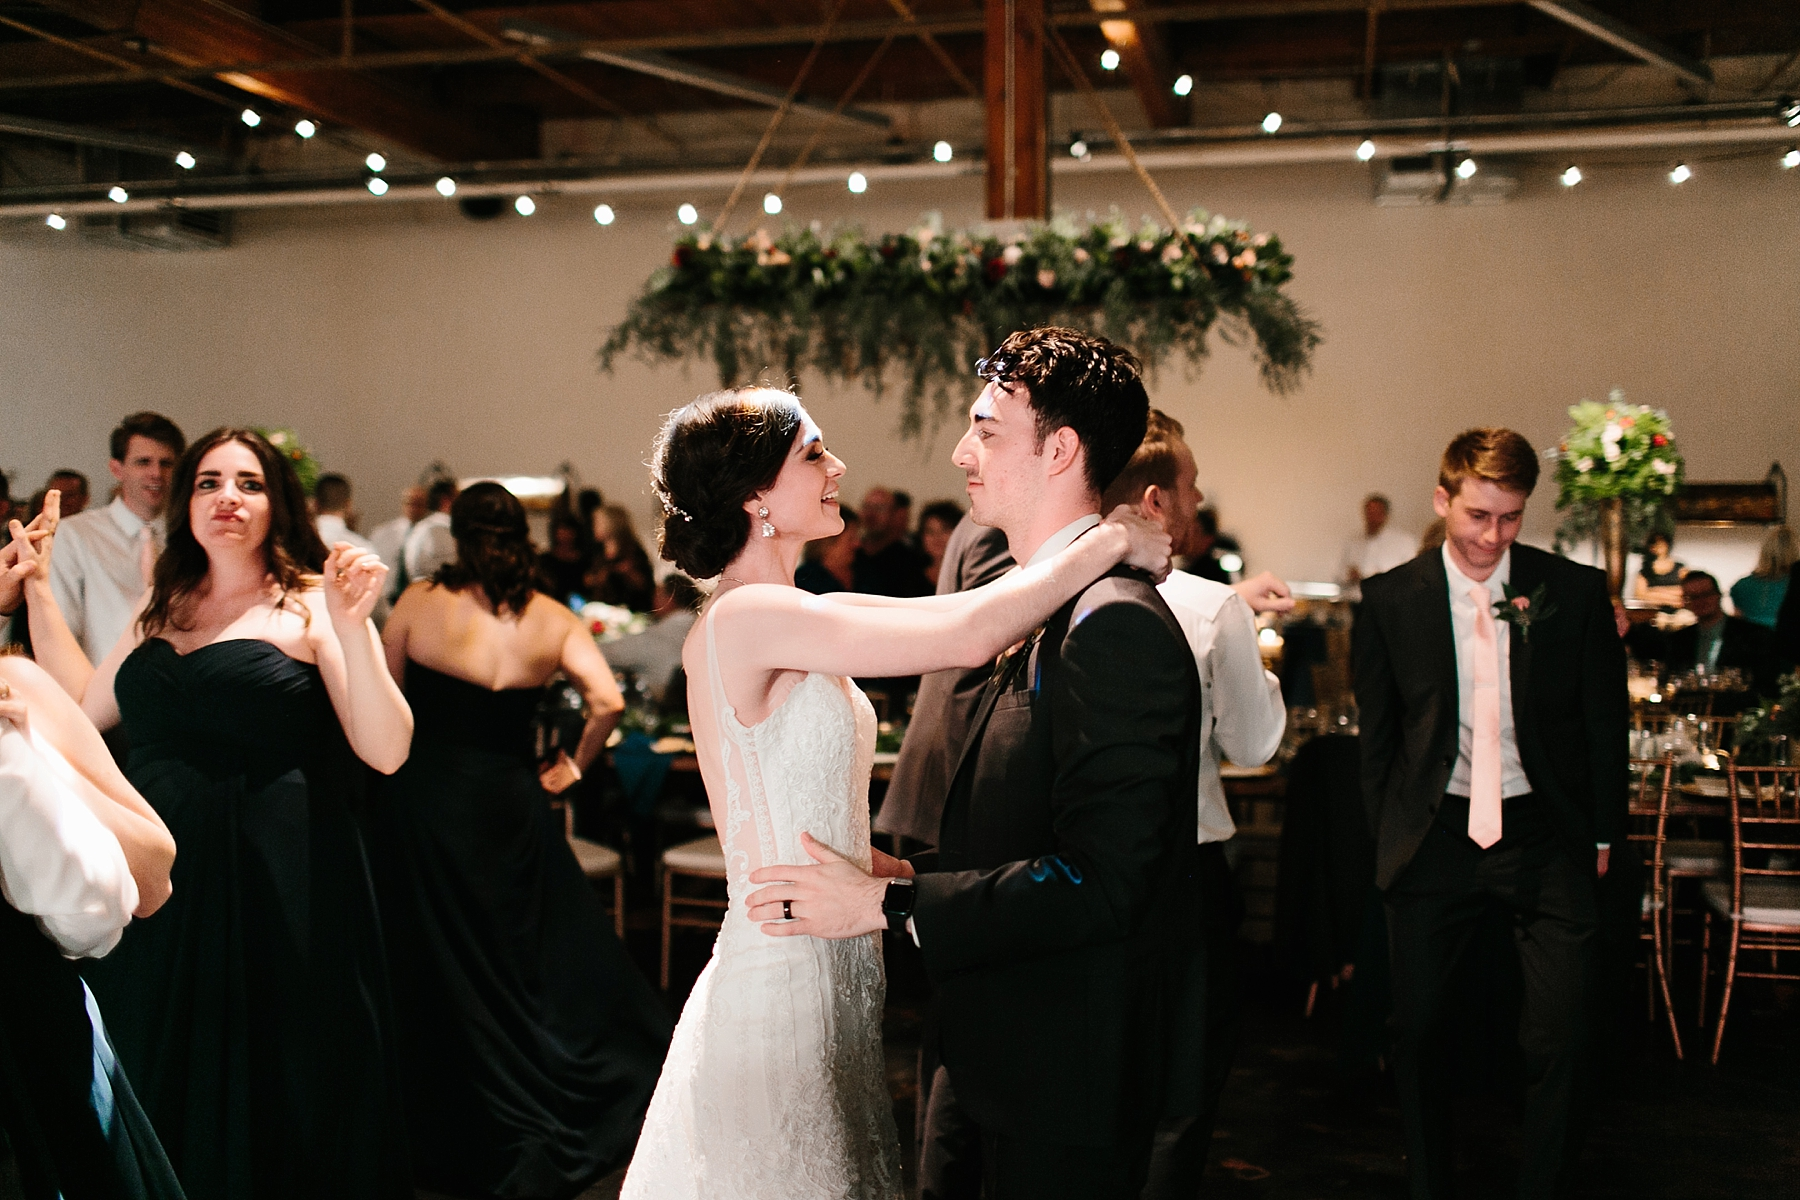 Emily + Caleb _ an elegant, intentional, industrial style wedding with navy + gold accents at 6500 in Dallas, TX by North Texas Wedding Photographer Rachel Meagan Photography _ 154